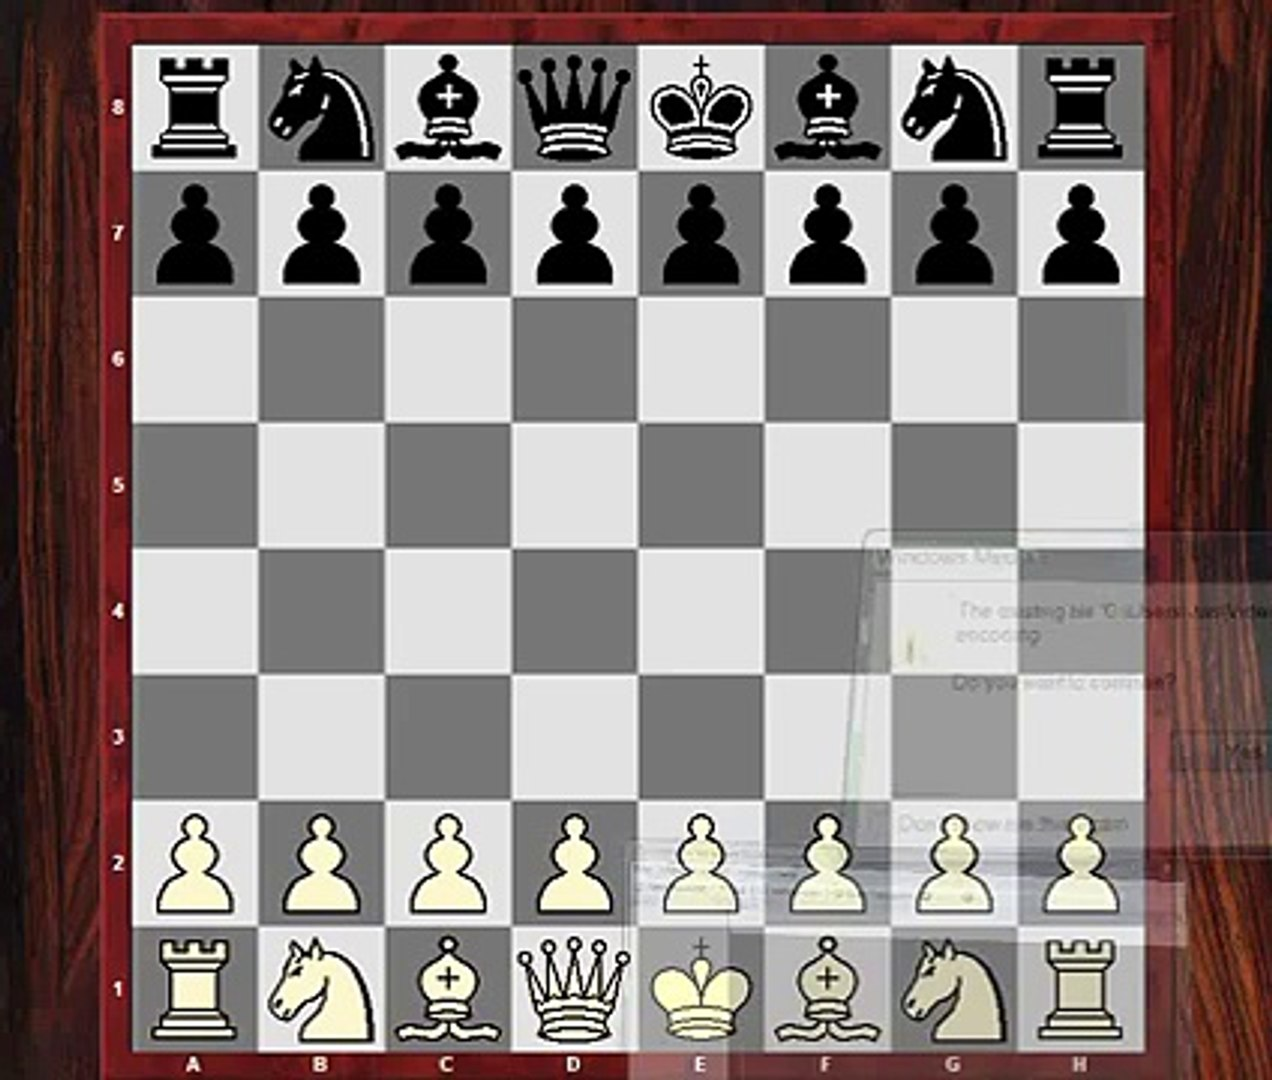 Bobby Fischer Chess!: How Bobby Fischer slayed the Sicilian Dragon! - Memorable Game